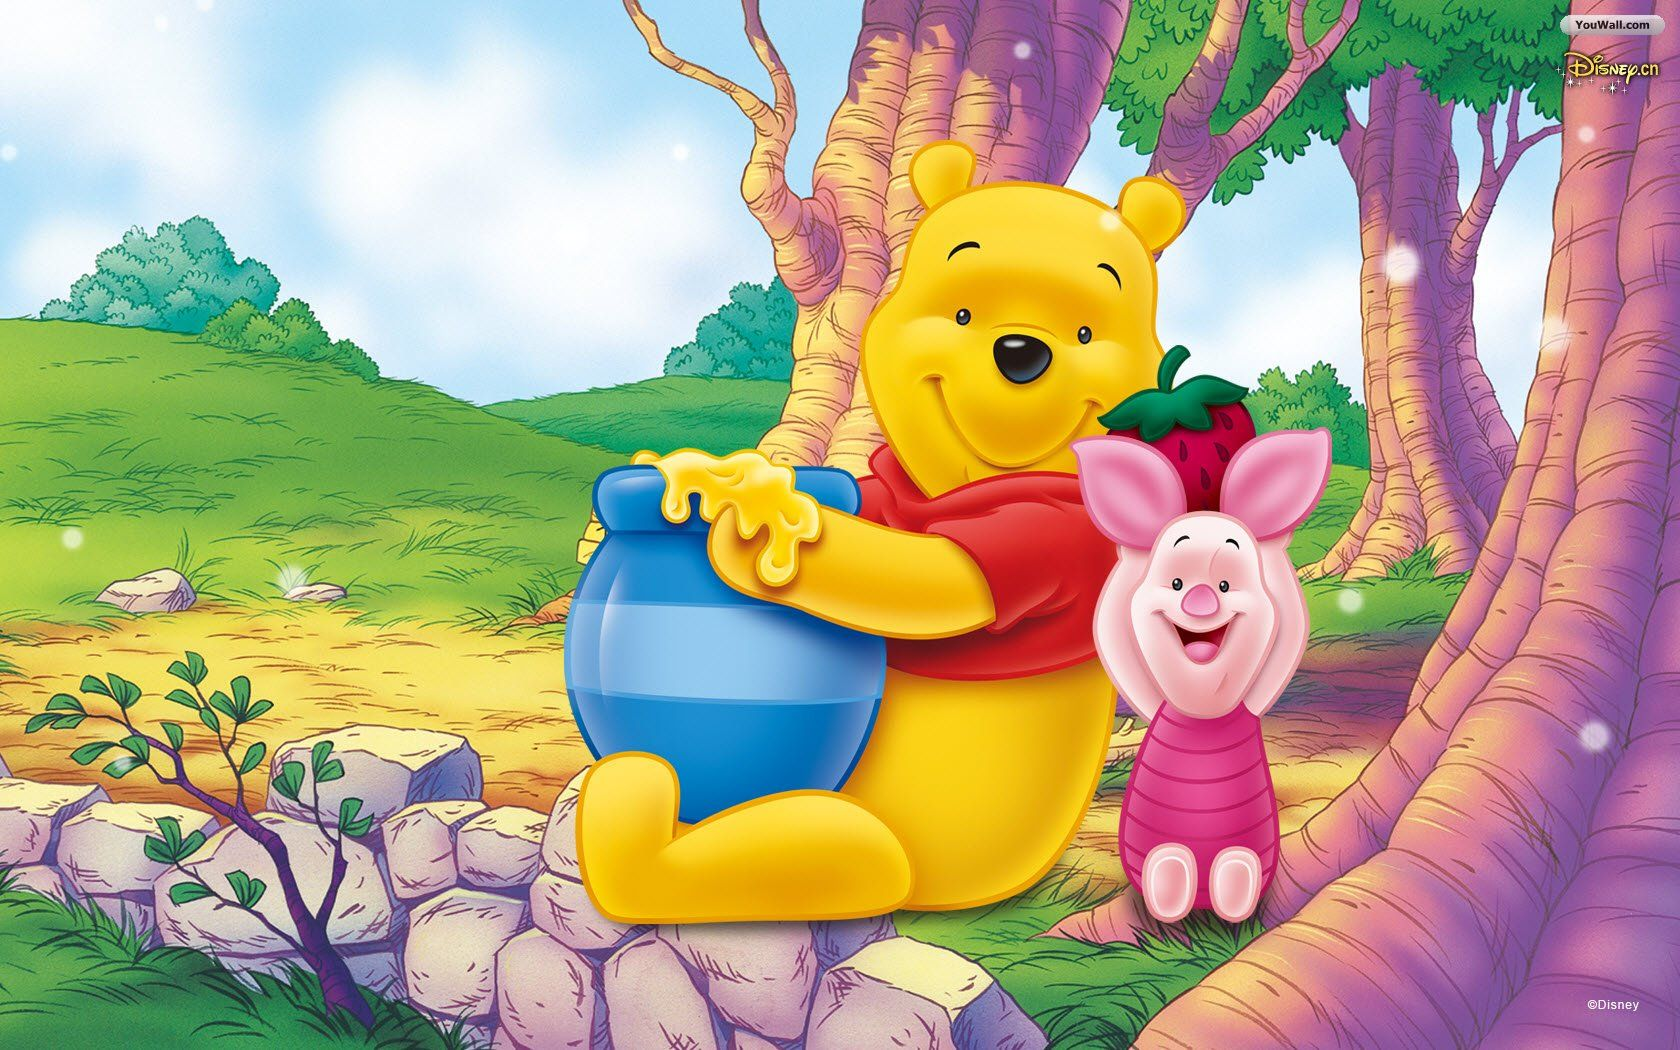 Disney Desktop Backgrounds Hd Disney Characters Wallpaper Disney Wallpaper Cute Winnie The Pooh